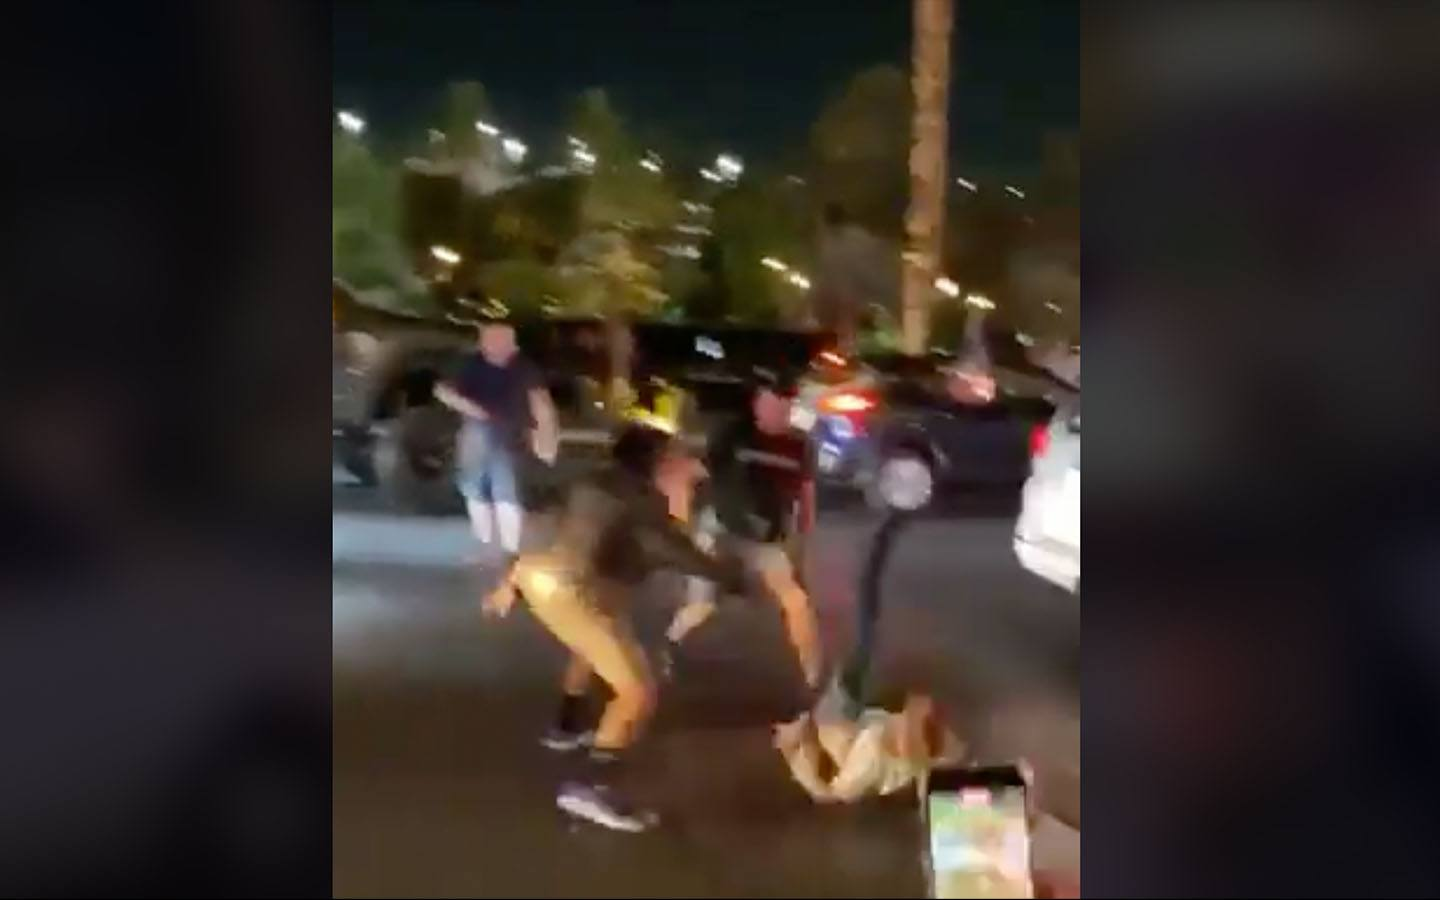 [WATCH] Liberal Protester Promptly Gets Knocked to the Pavement After Vandalizing Cars During a Trump Parade in Vegas